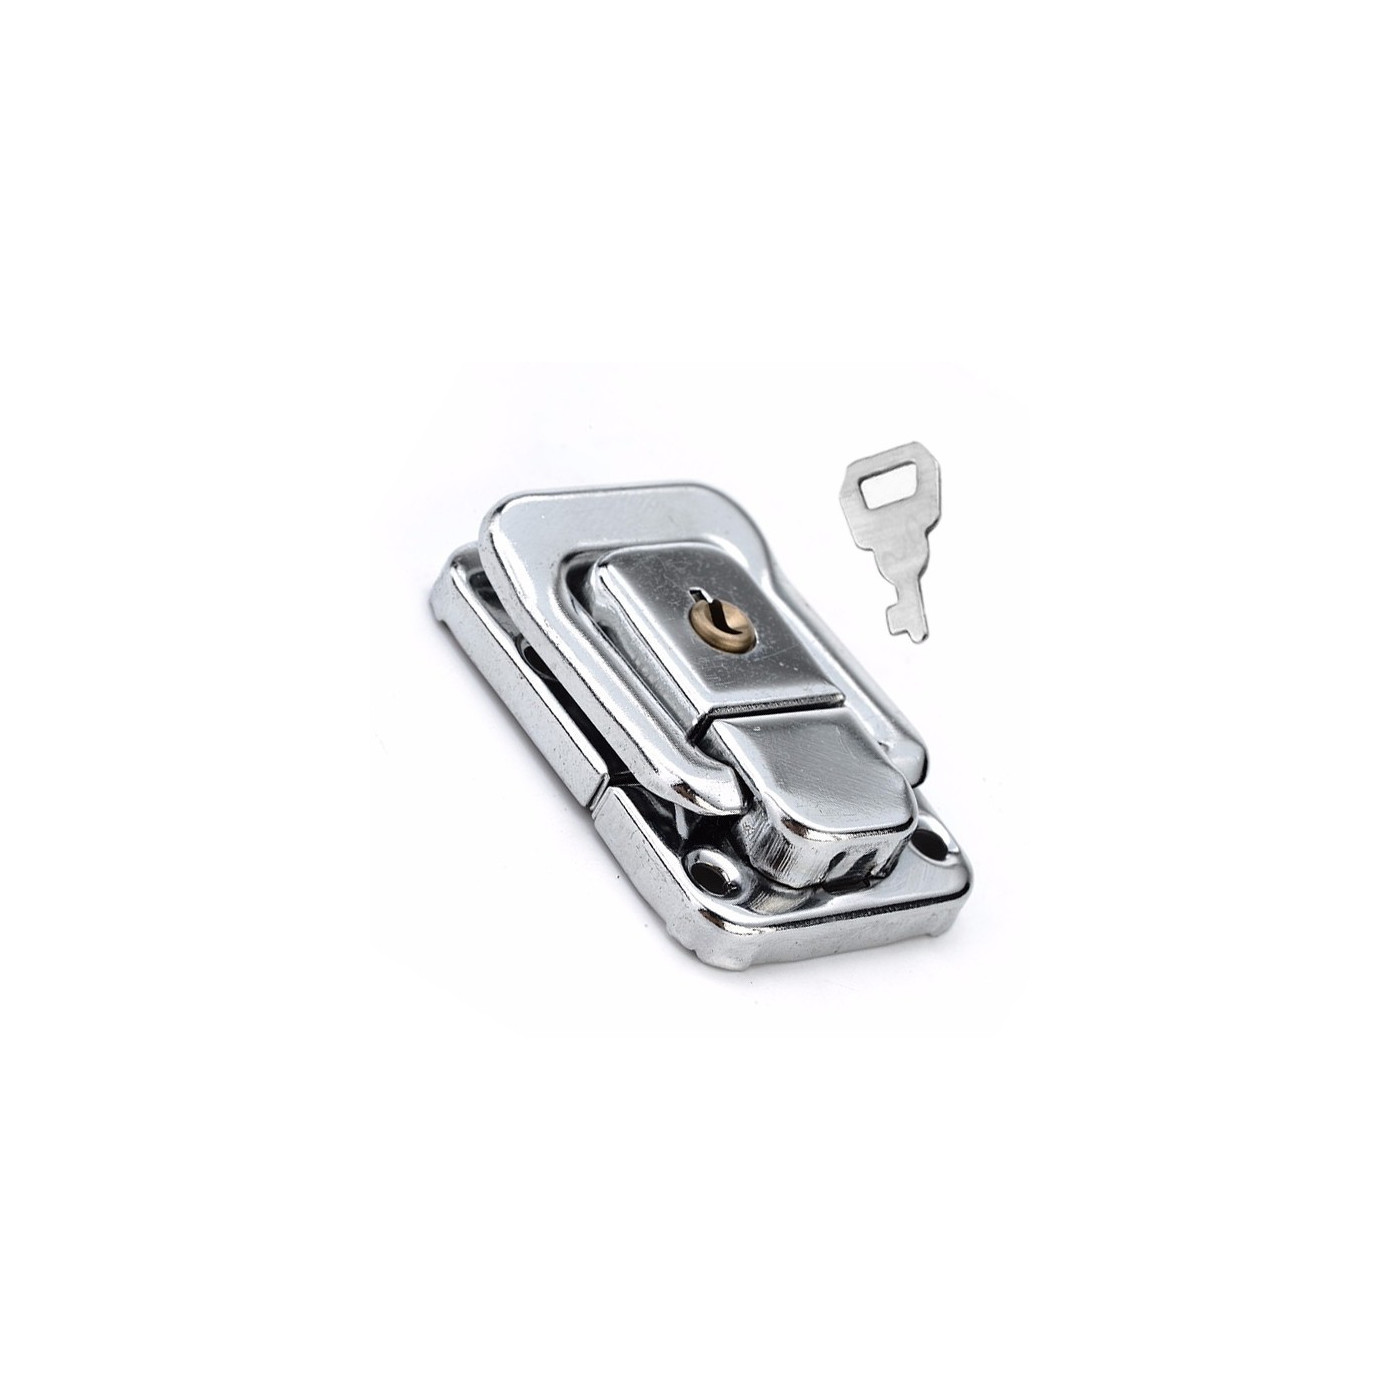 Chest latch, lock set, silver color, 32x48 mm  - 1